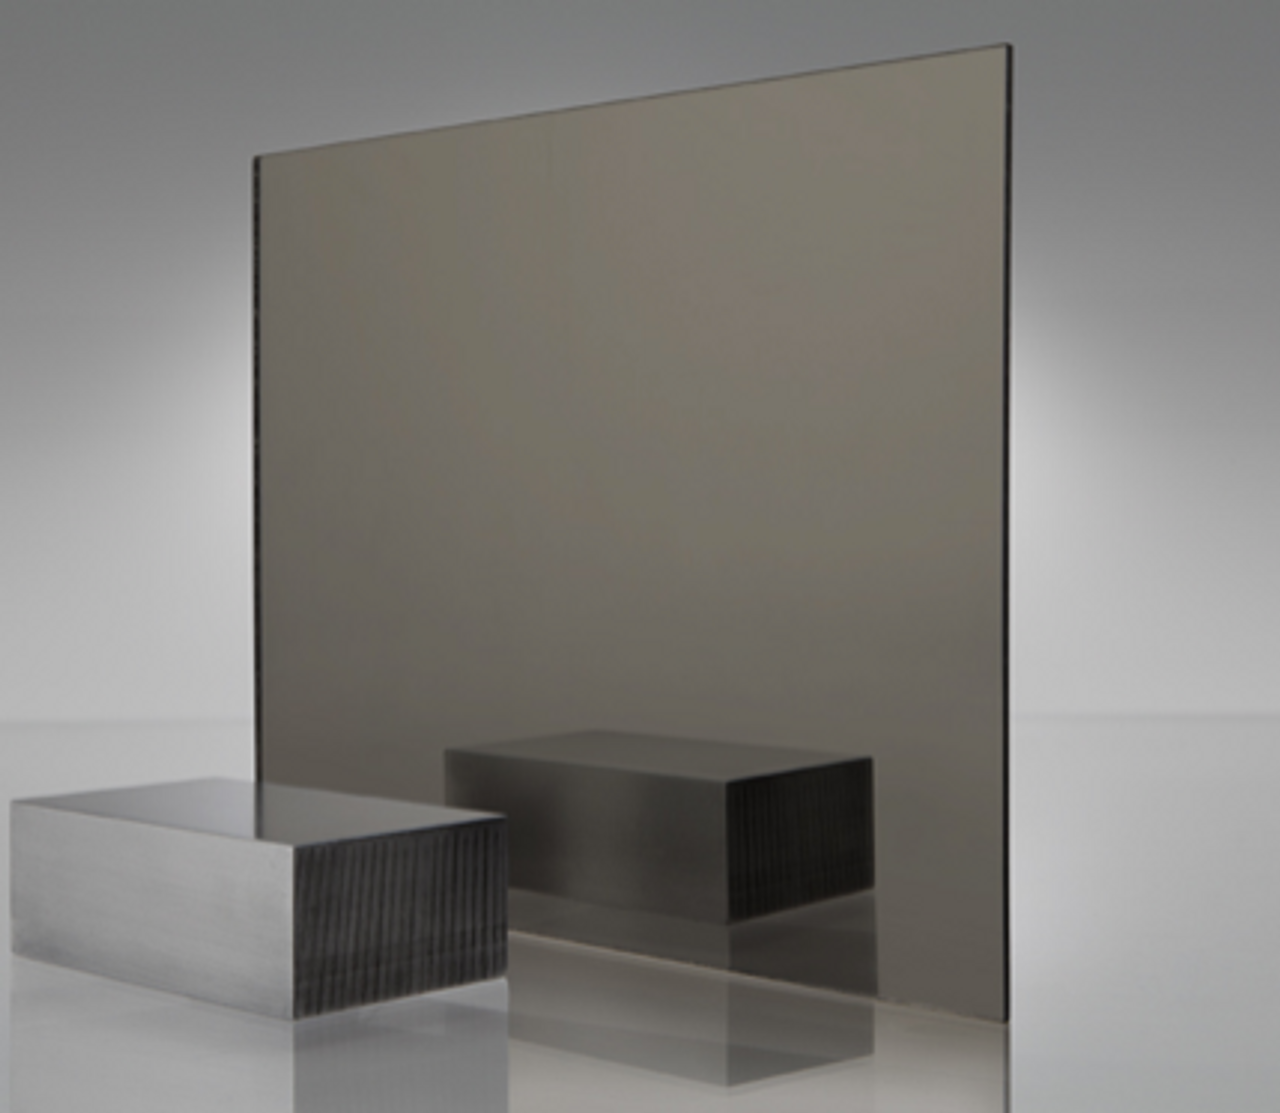 4x8' Mirrored Acrylic BRONZE